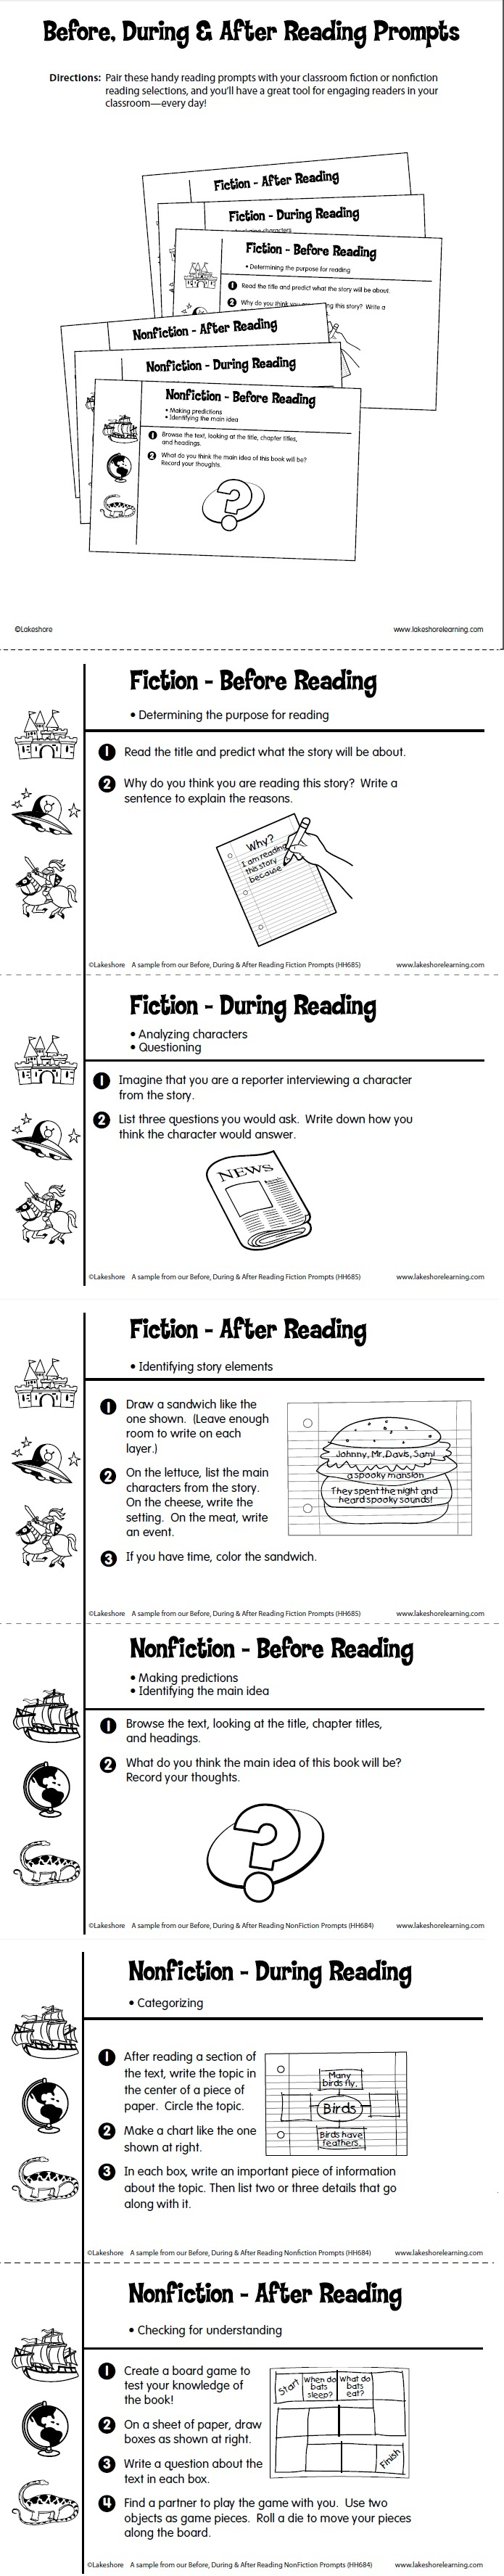 Before, During & After Reading Prompt Printables to give students in guided reading....goes directly to the download!